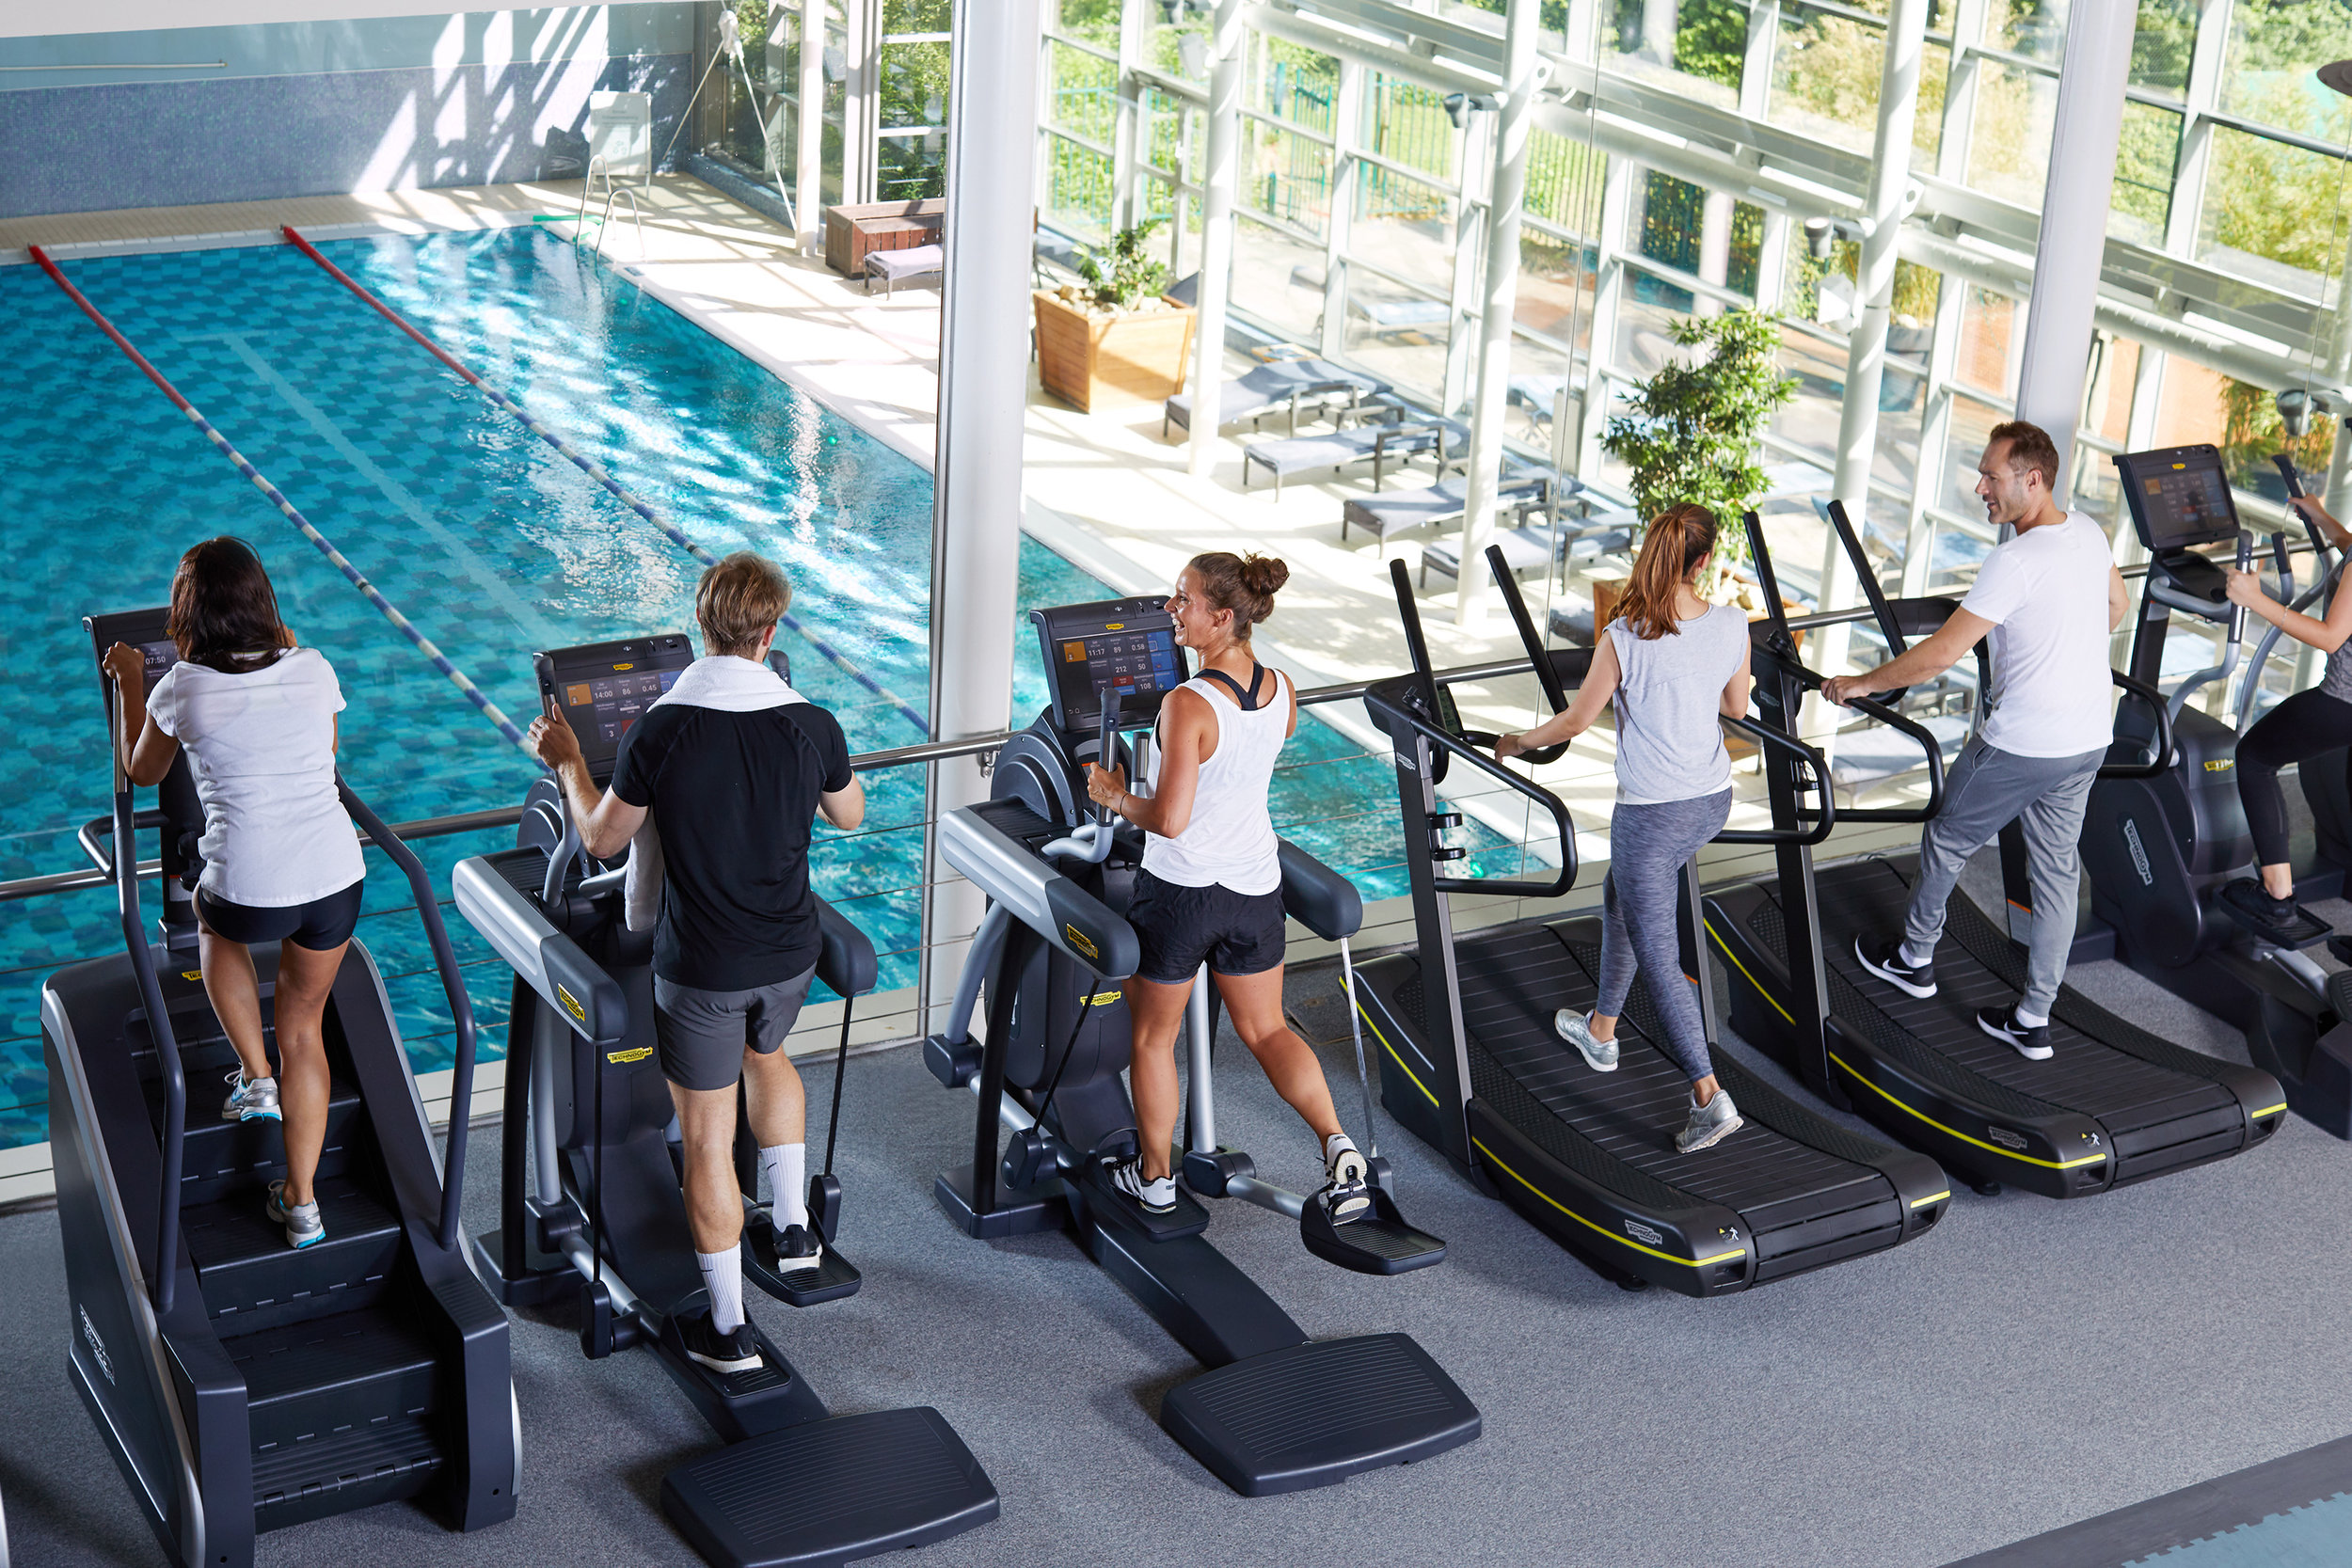 Sports & Fitness Wellbeing Commercial Photographer Aspria Group Cardio Class